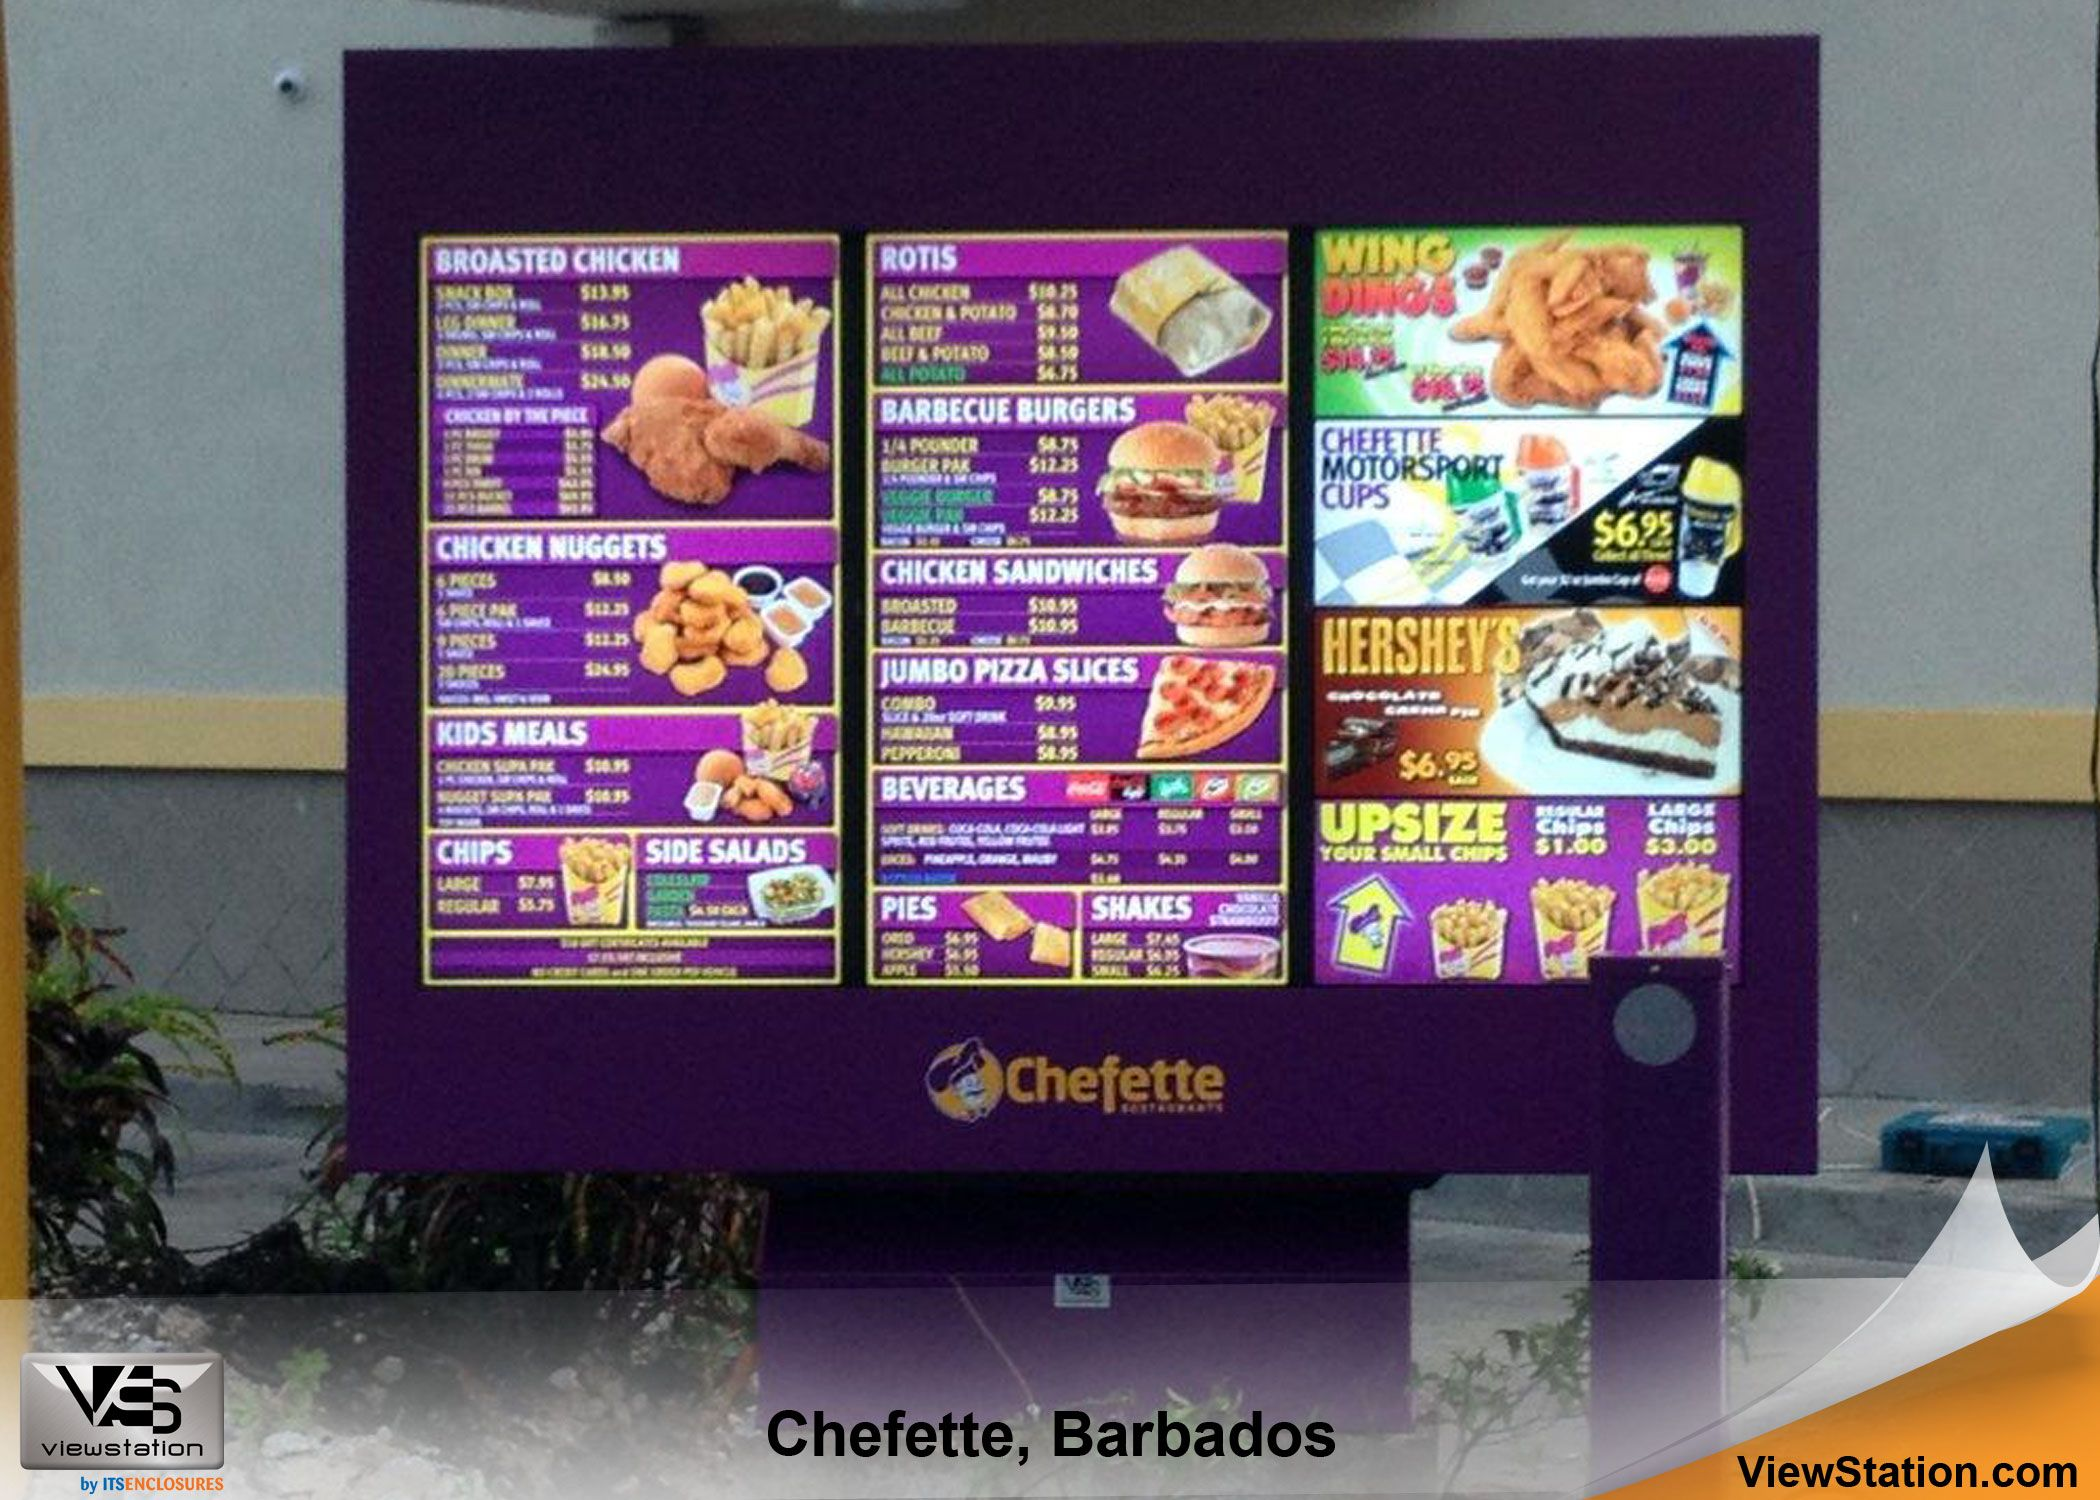 7b131a3ad55c Chefette Barbados - Caribbean Islands ViewStation QSR (Quick Service  Restaurant) by ITSENCLOSURES Digital Menu Board #ViewStation